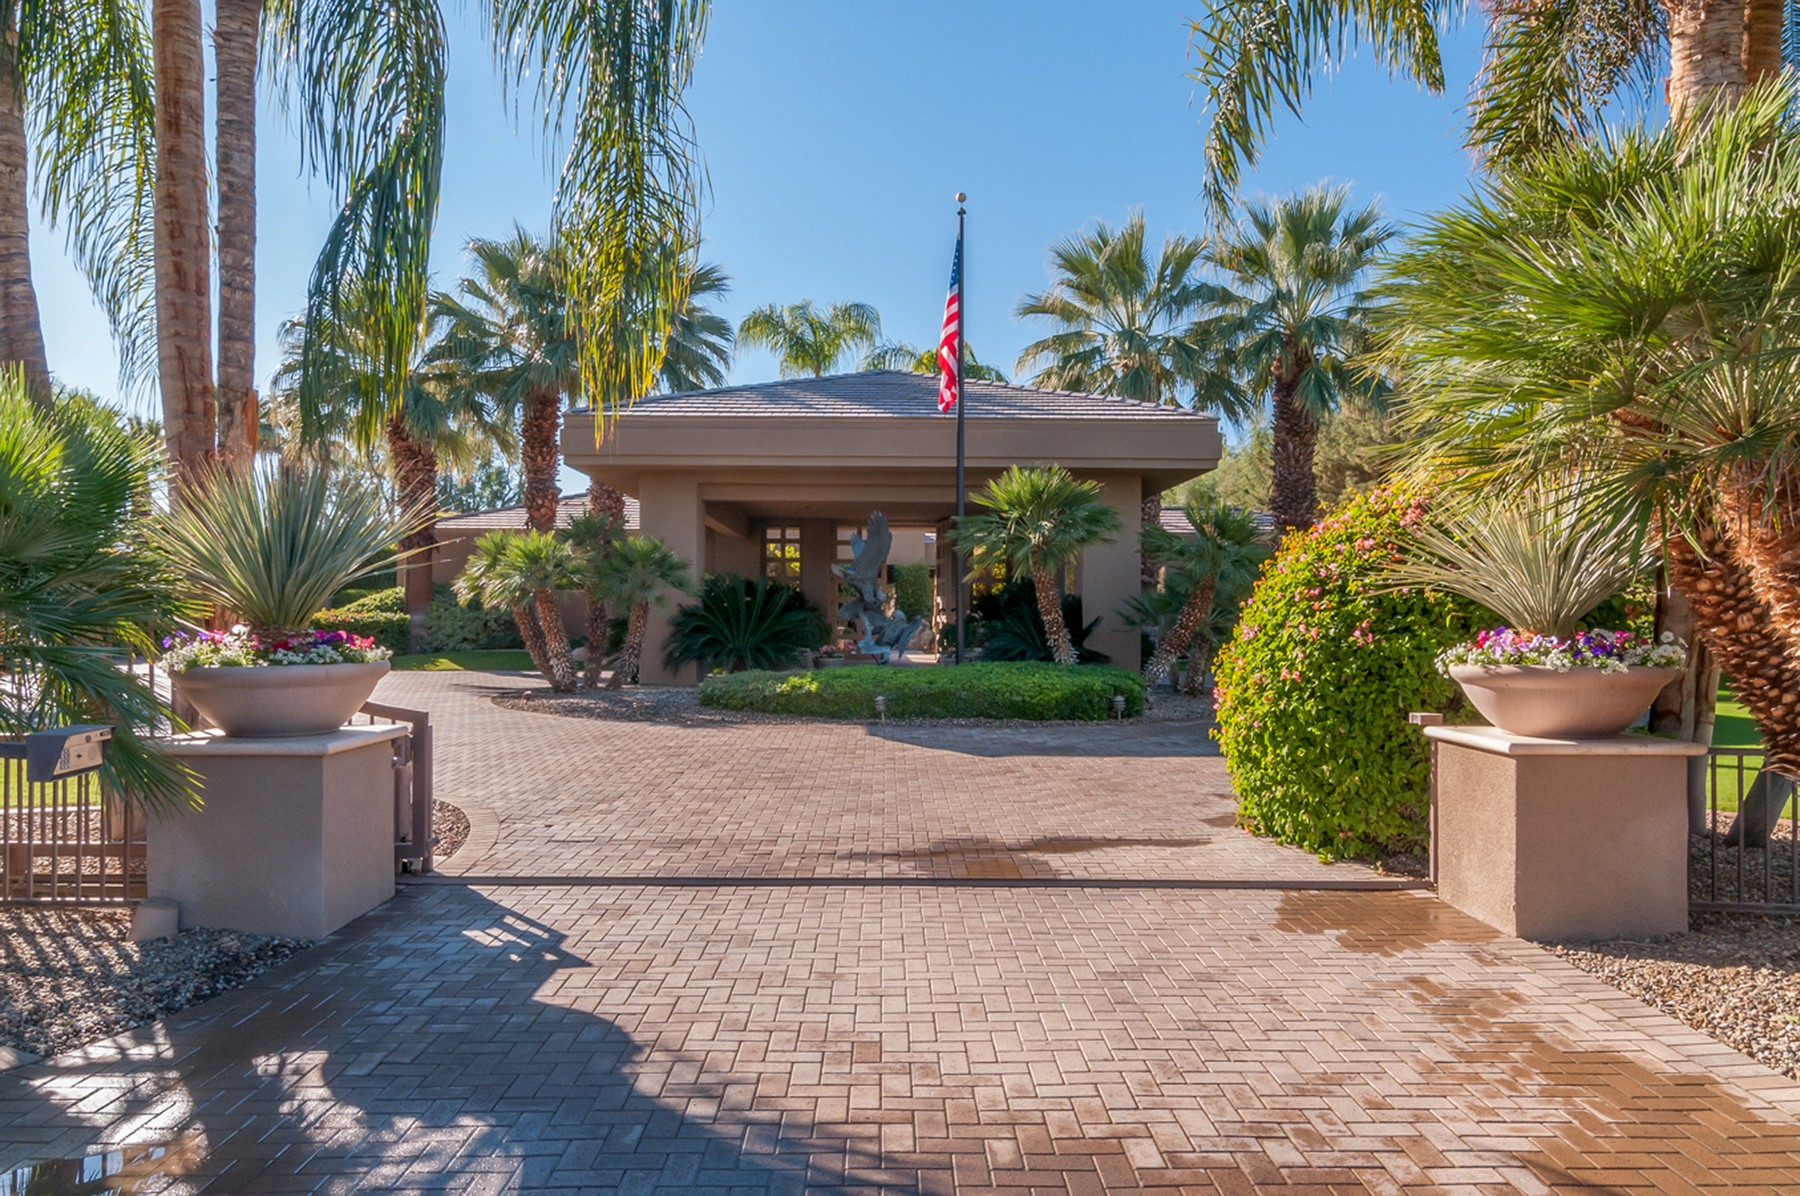 Single Family Home for Sale at 72420 Morningstar Road Rancho Mirage, California, 92270 United States